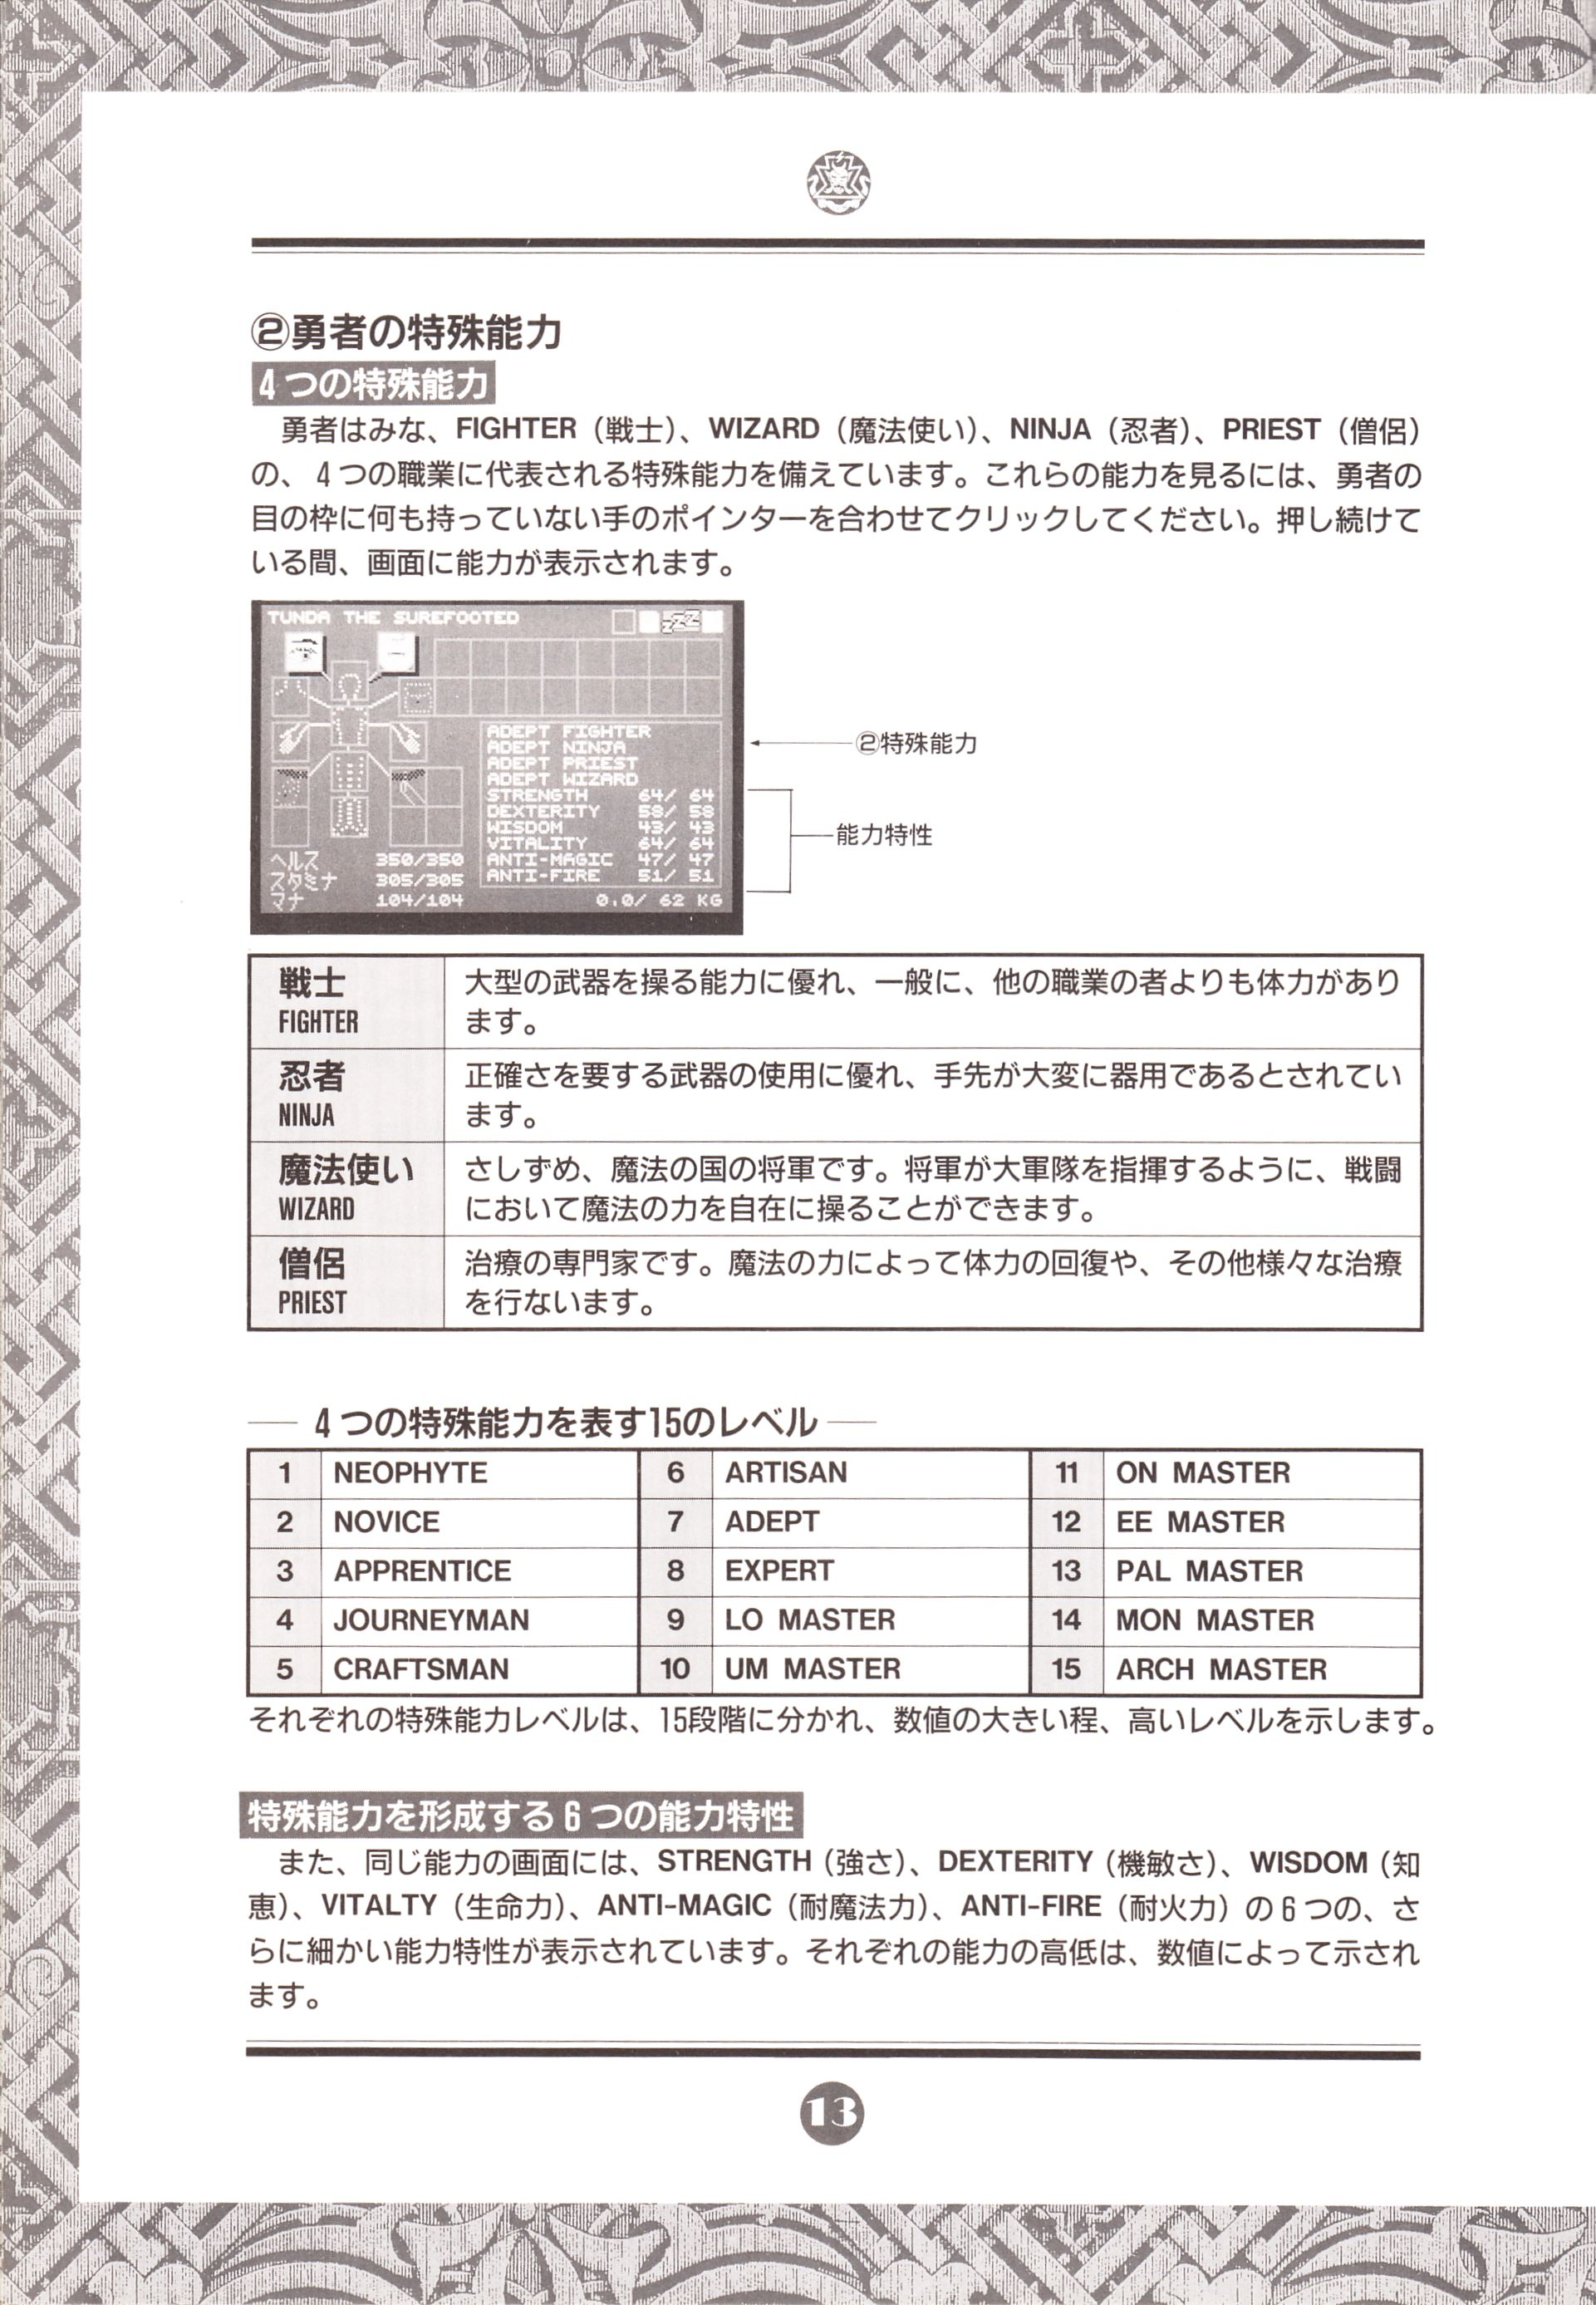 Game - Chaos Strikes Back - JP - PC-9801 - 3-5-inch - An Operation Manual - Page 016 - Scan